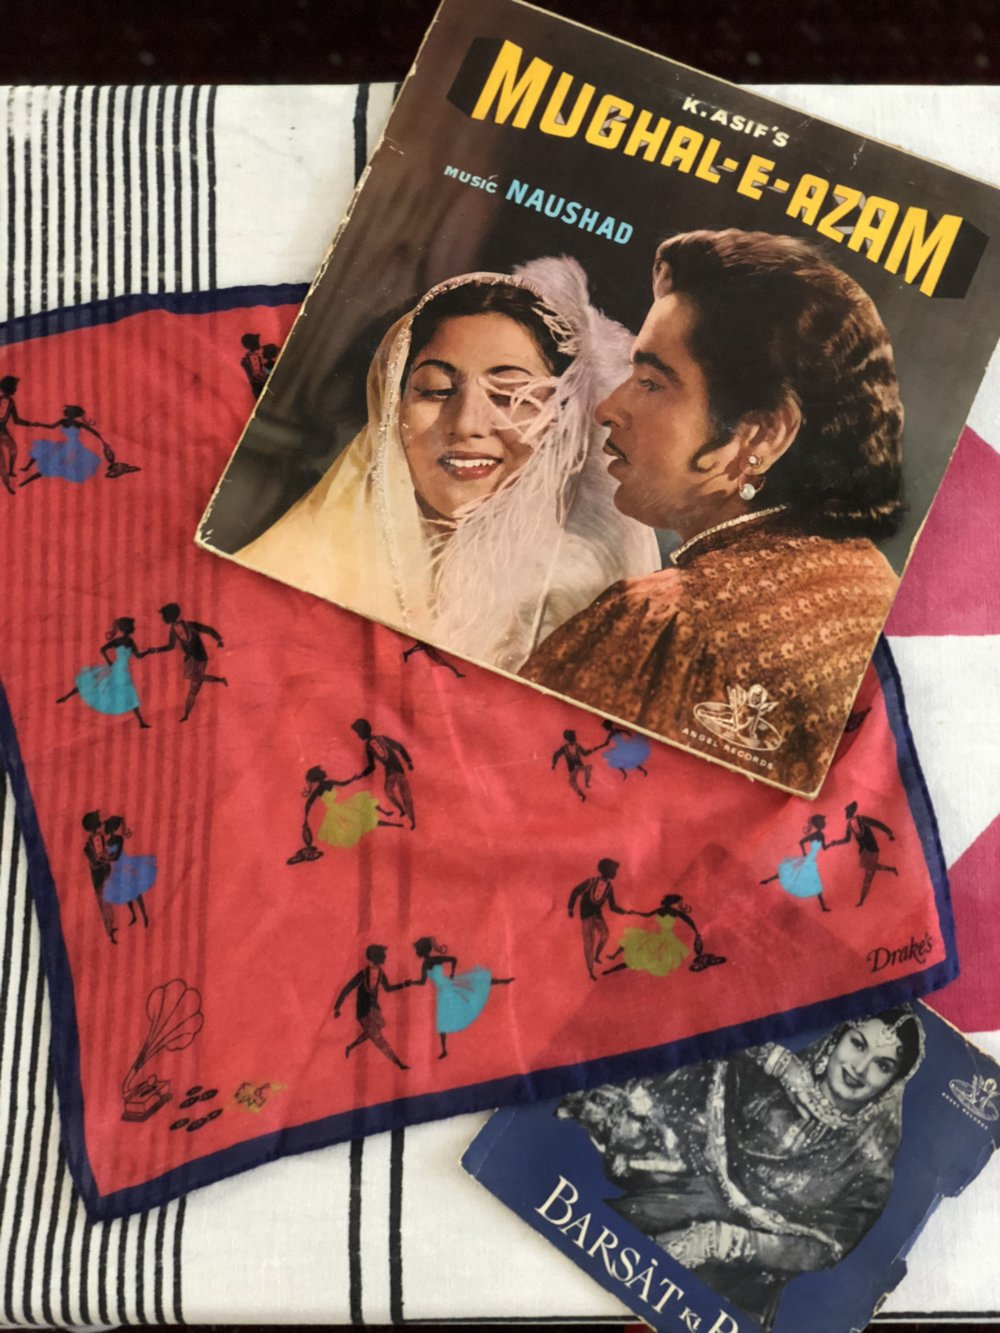 A pocket square by Drake's with some vintage Bollywood records.